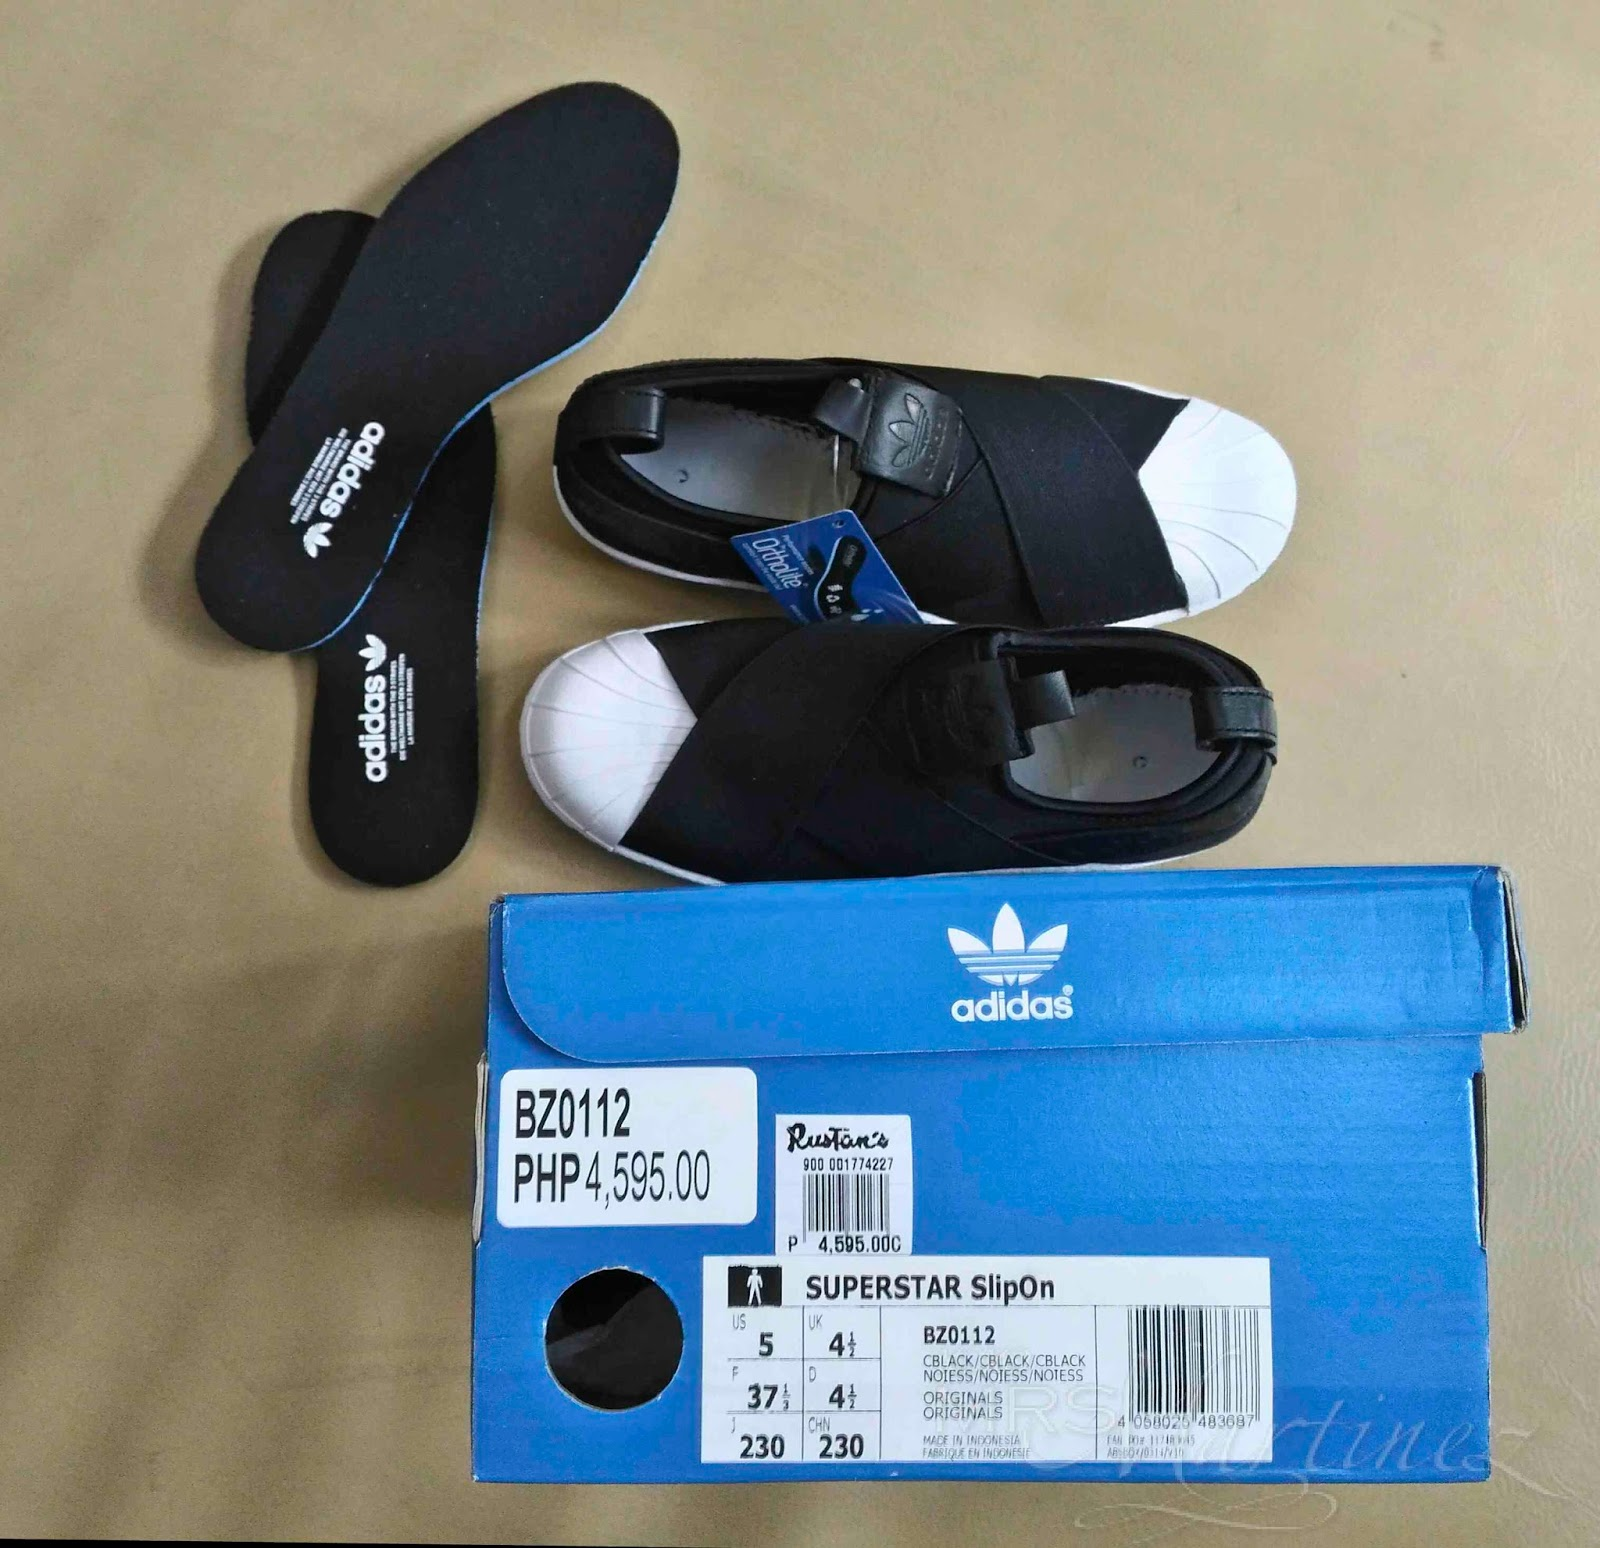 Adidas Superstar Slip On Black In Ortholite How To Spot A Fake